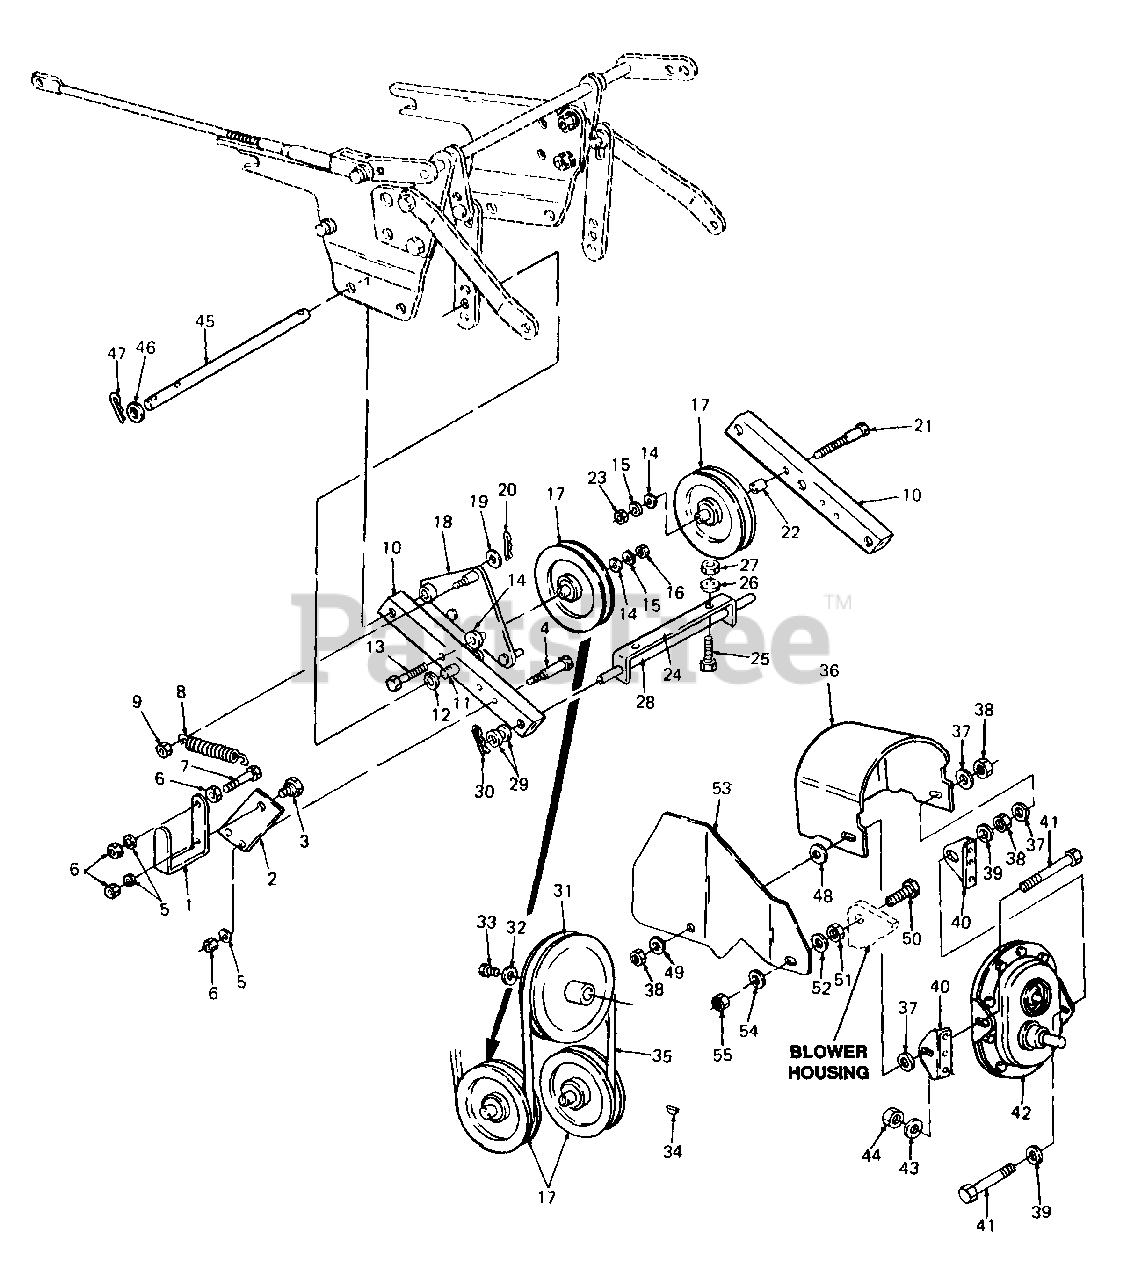 Cub Cadet Parts on the Undercarriage Drive Diagram for 451